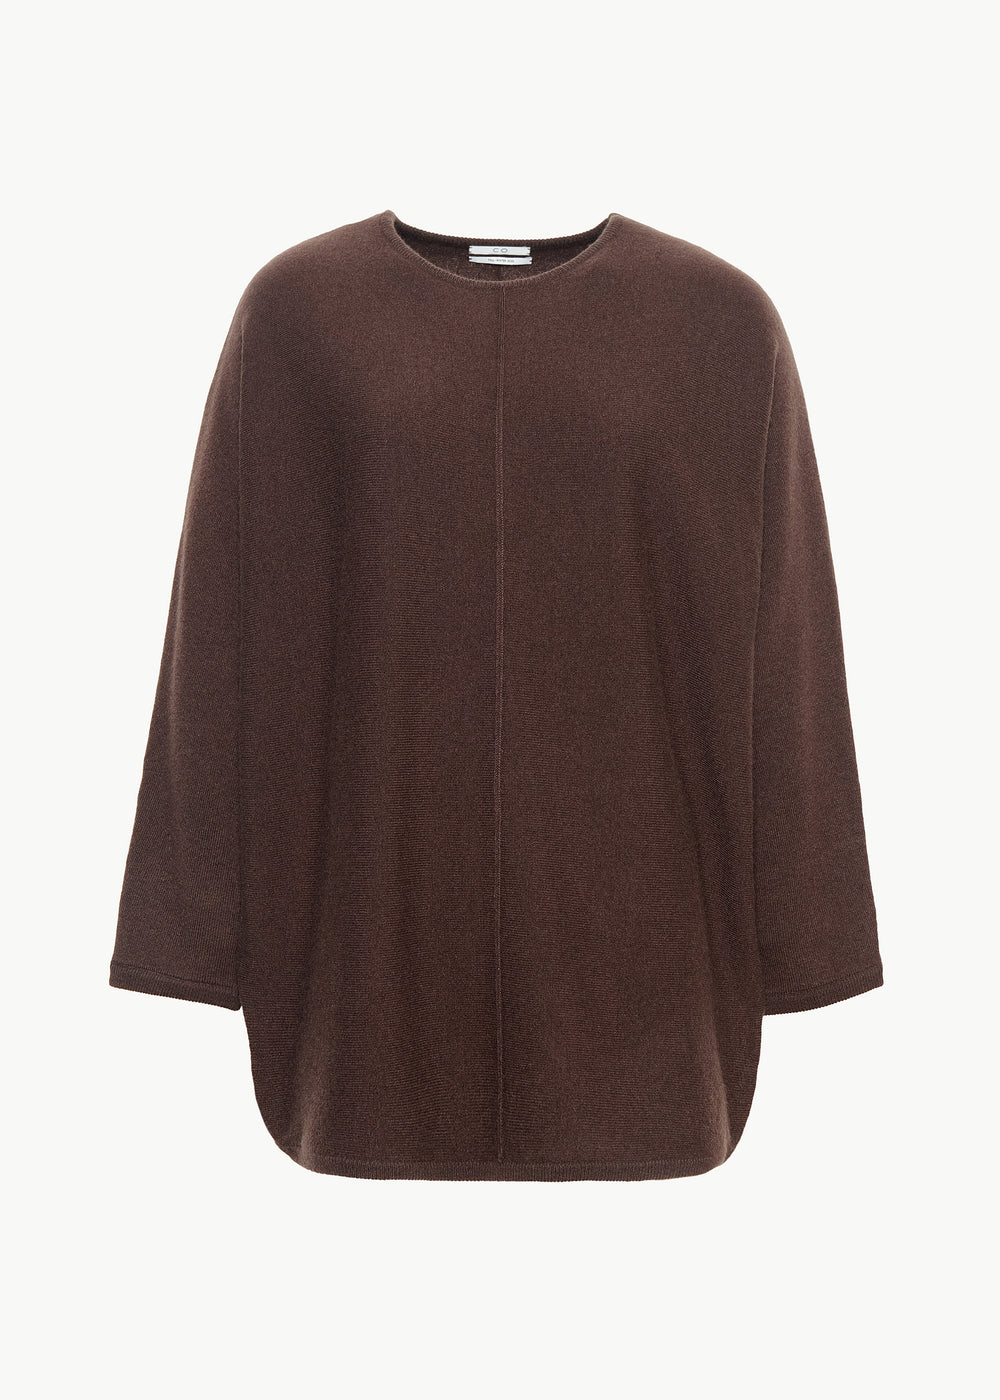 Crew Neck Dolman Sleeve Sweater in Cashmere - Chocolate - CO